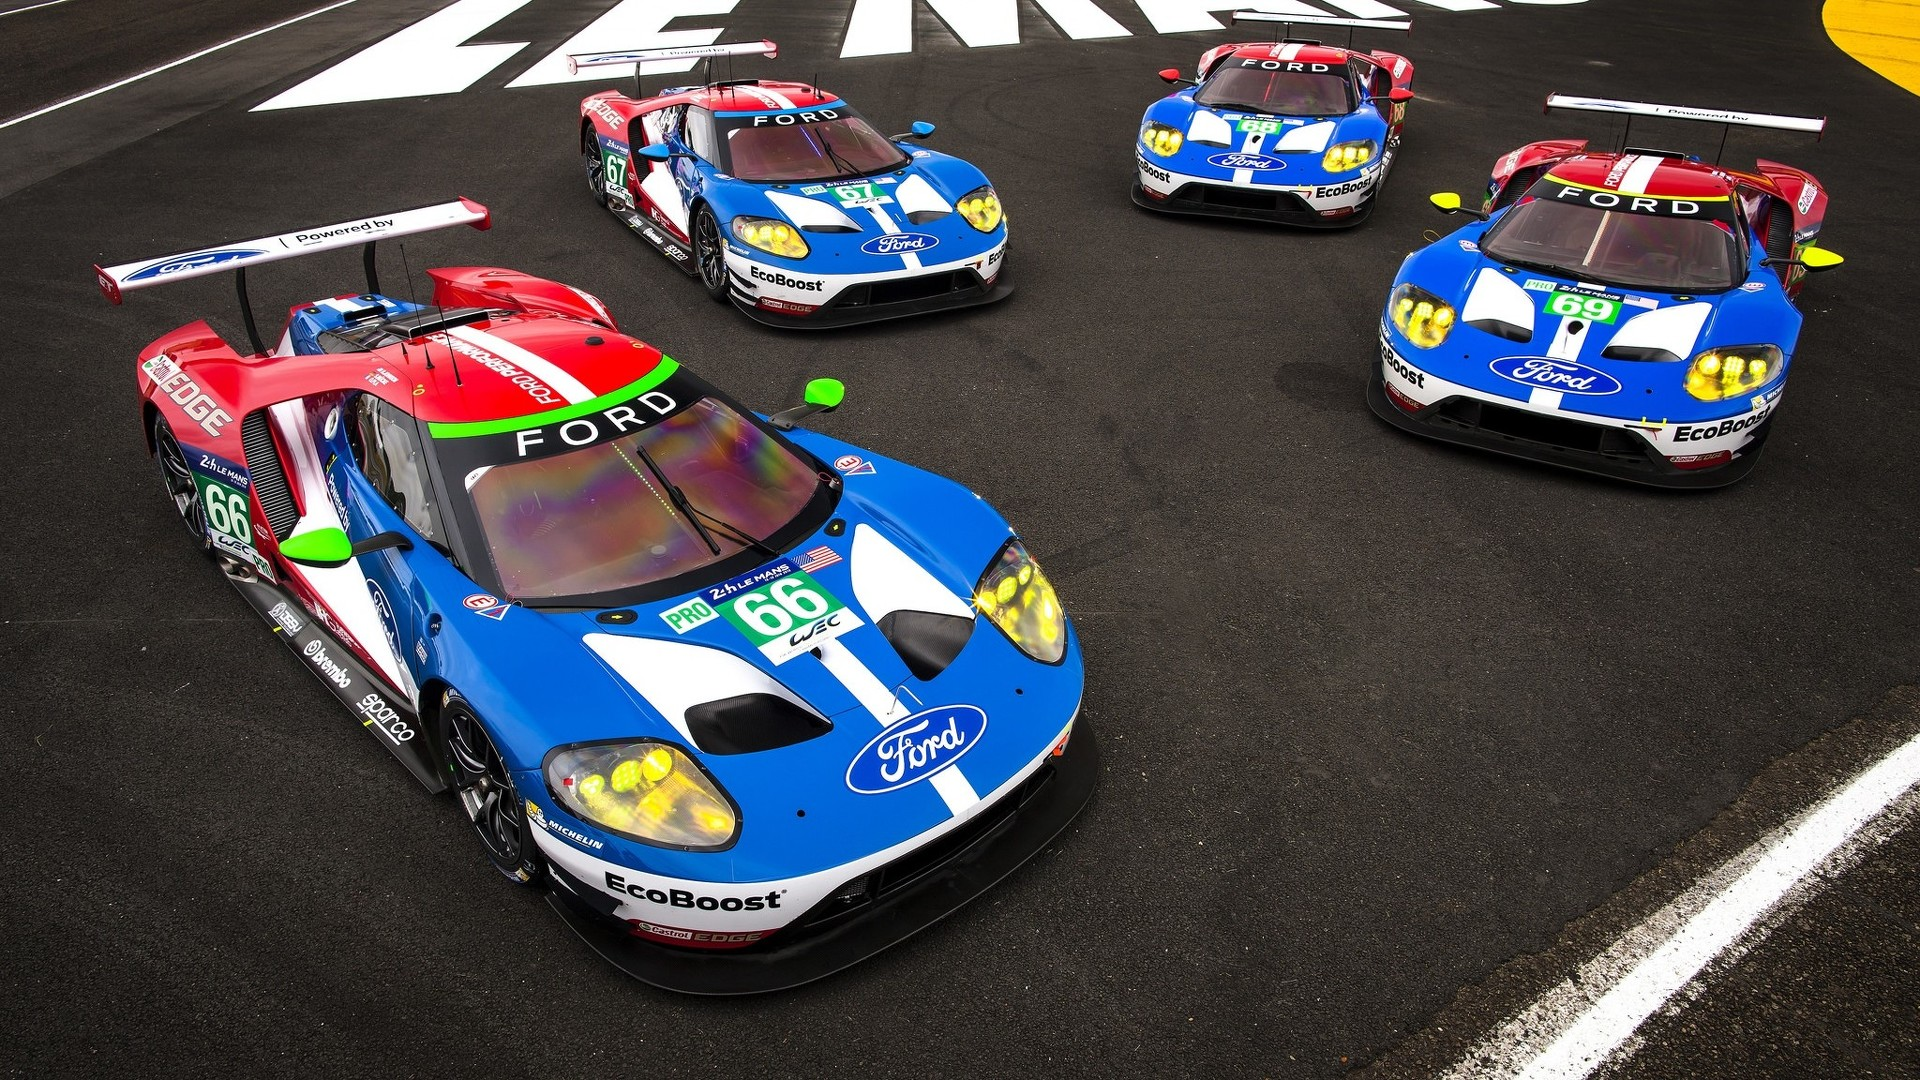 Ford GT race car travels from Le Mans to Goodwood